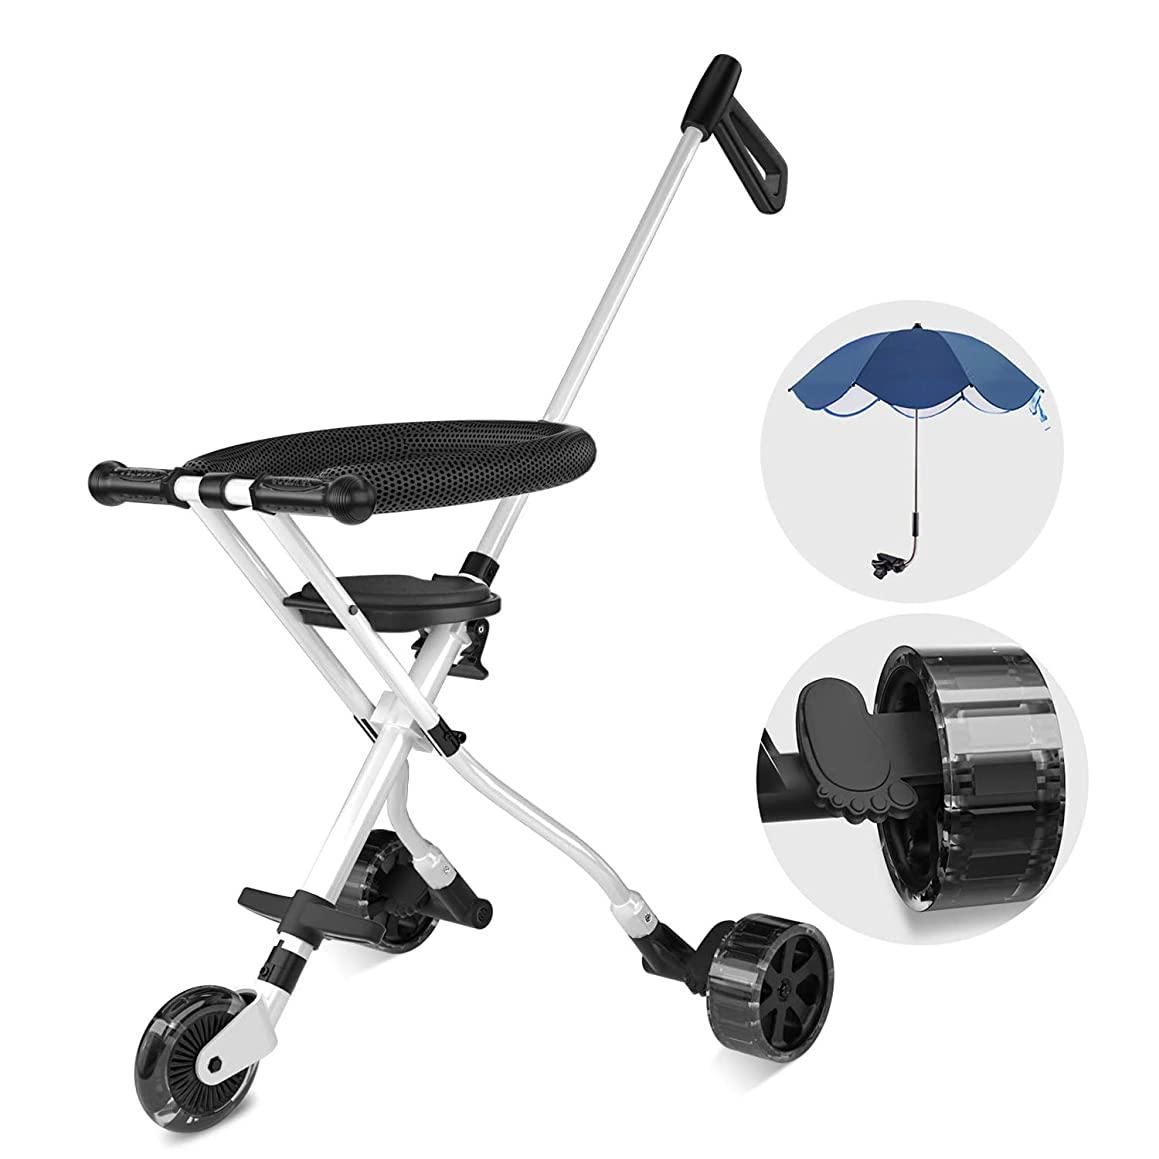 Geling 2 Baby Stroller One Step Design for Open & Fold Travel Stroller for Airplane Lightweight Stroller For Travel, Airplane Tricycle for Toddler 18 months-4 Years Old with Sunshade Umbrella